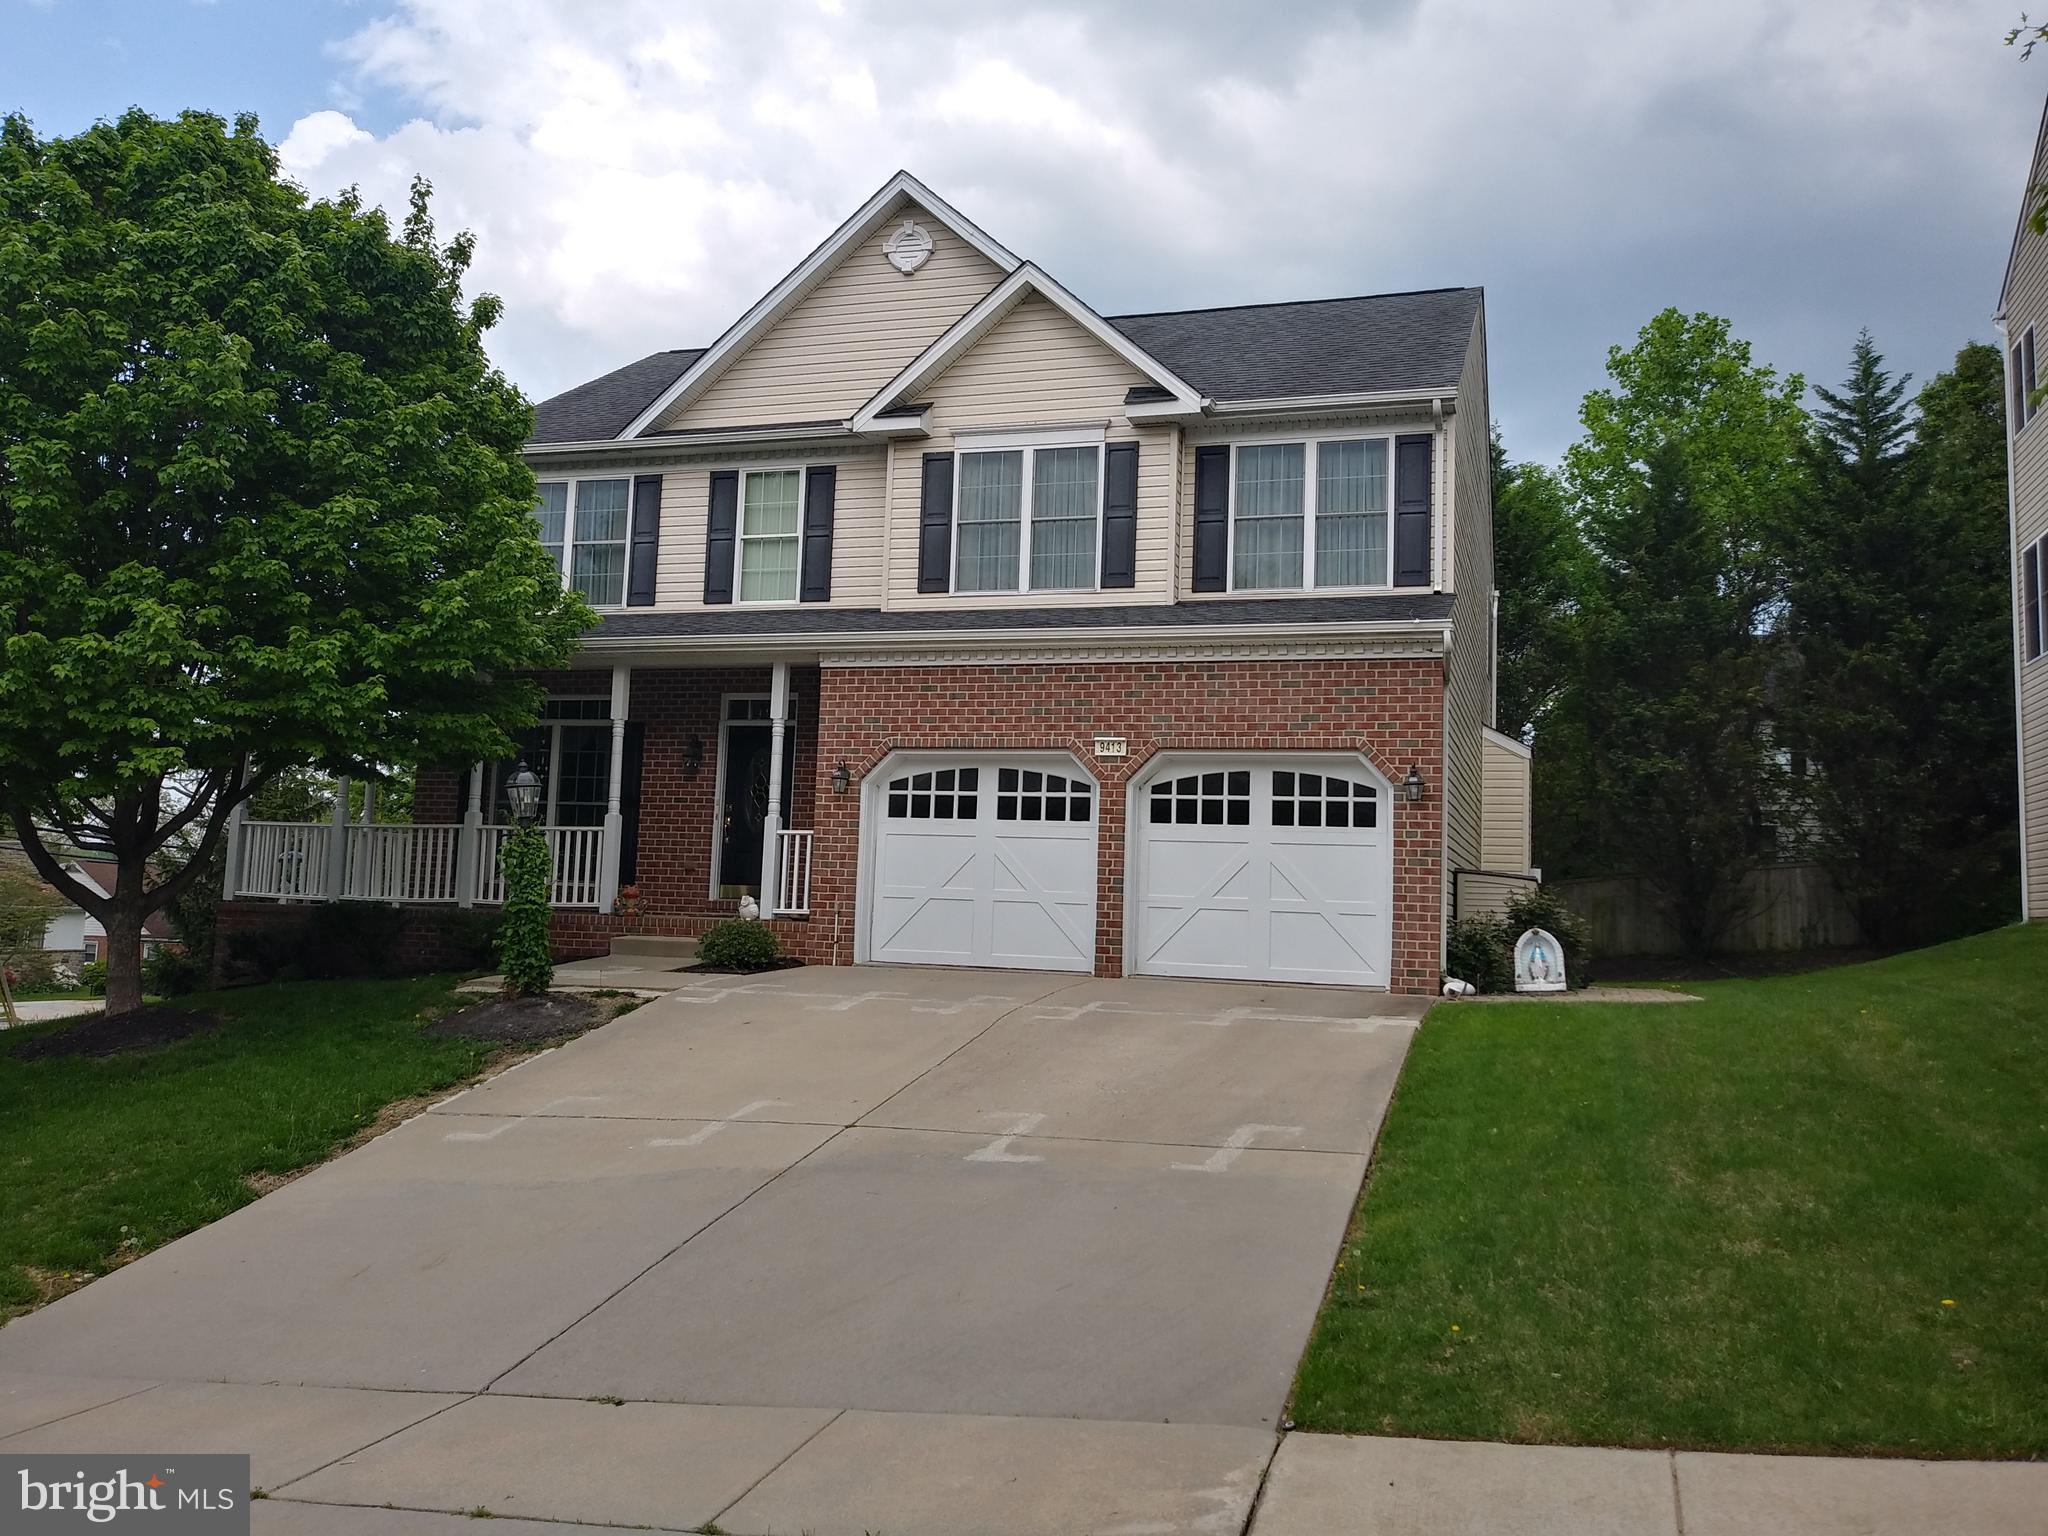 9413 RESERVOIR HILL COURT, BALTIMORE, MD 21234